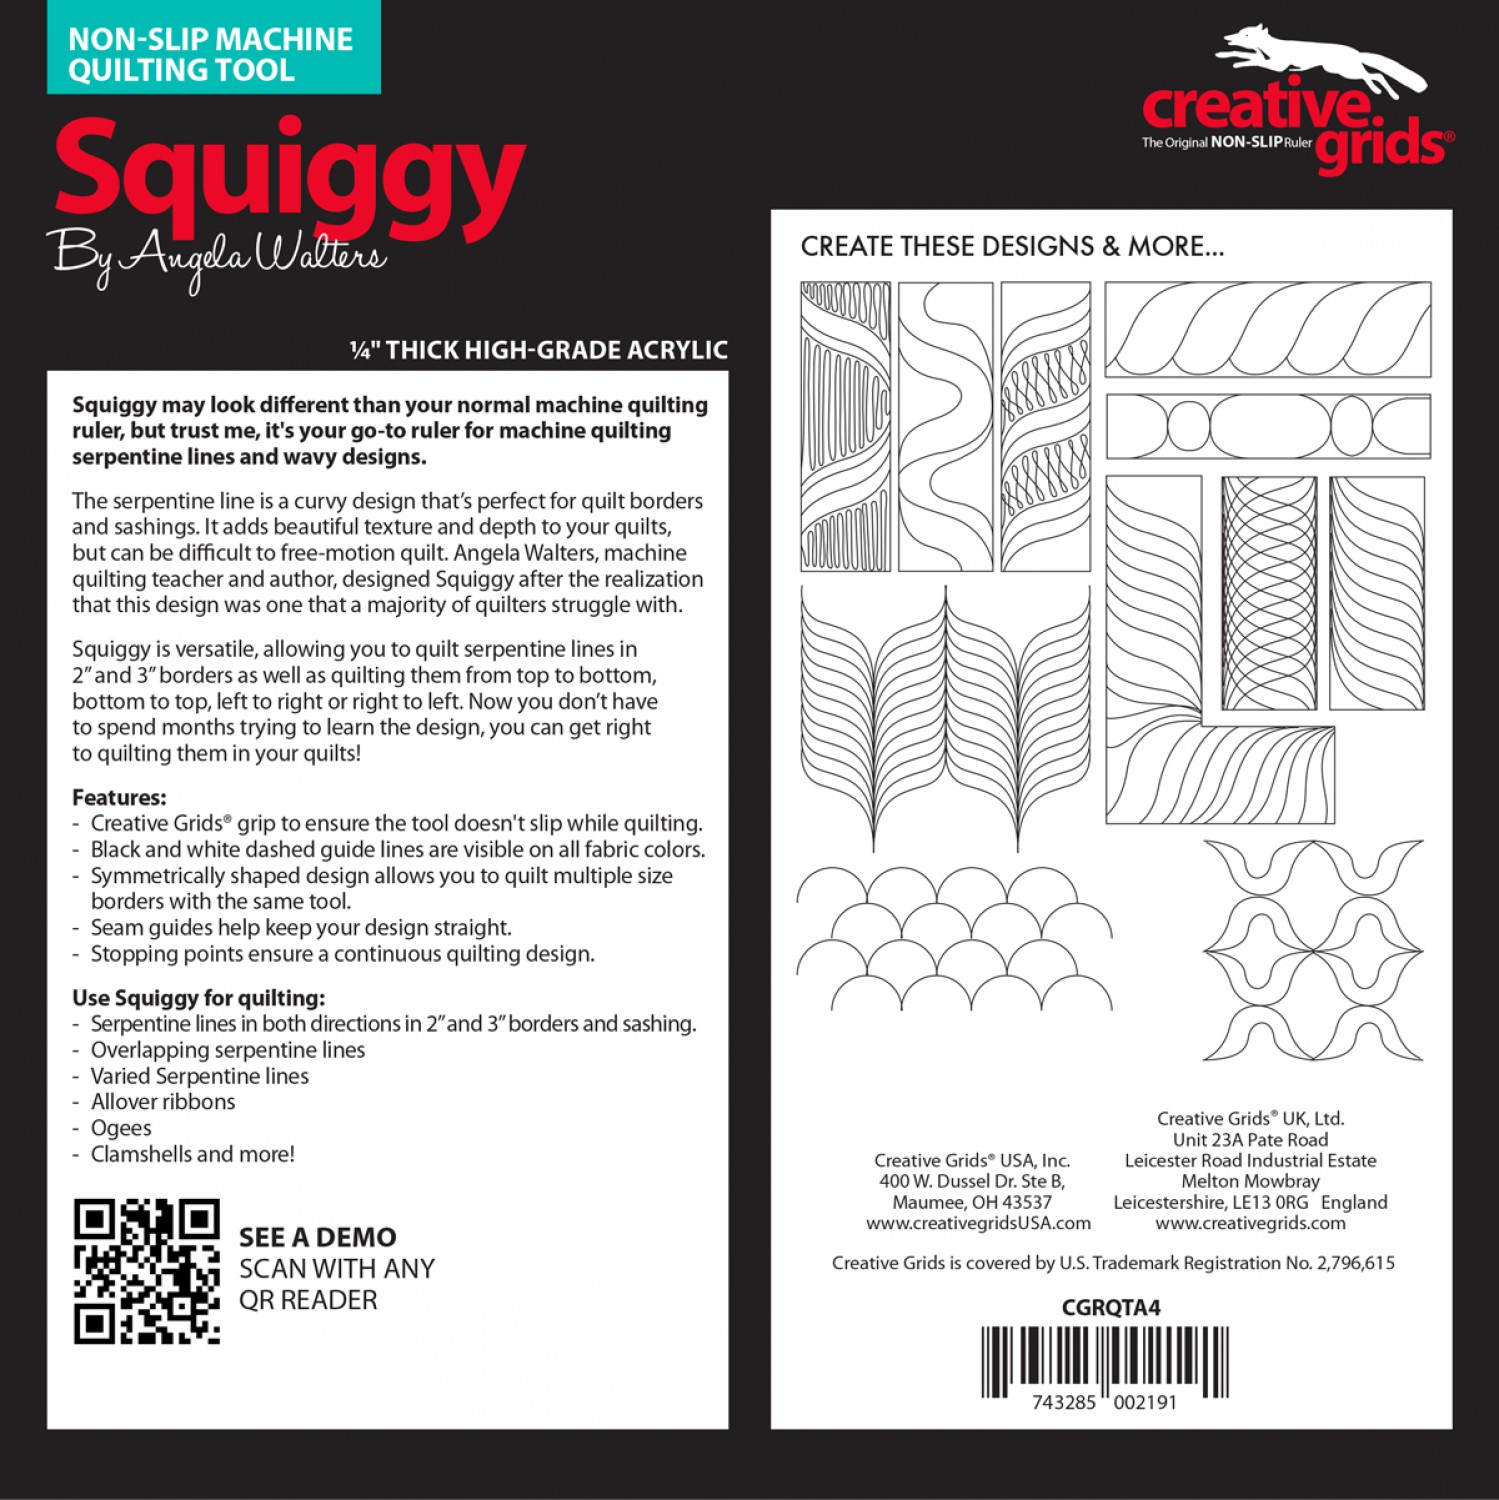 The Squiggy Machine Quilting Ruler will make quilting yummy serpentine lines on your longarm or home sewing machine much easier! Designed by Angela Walters.